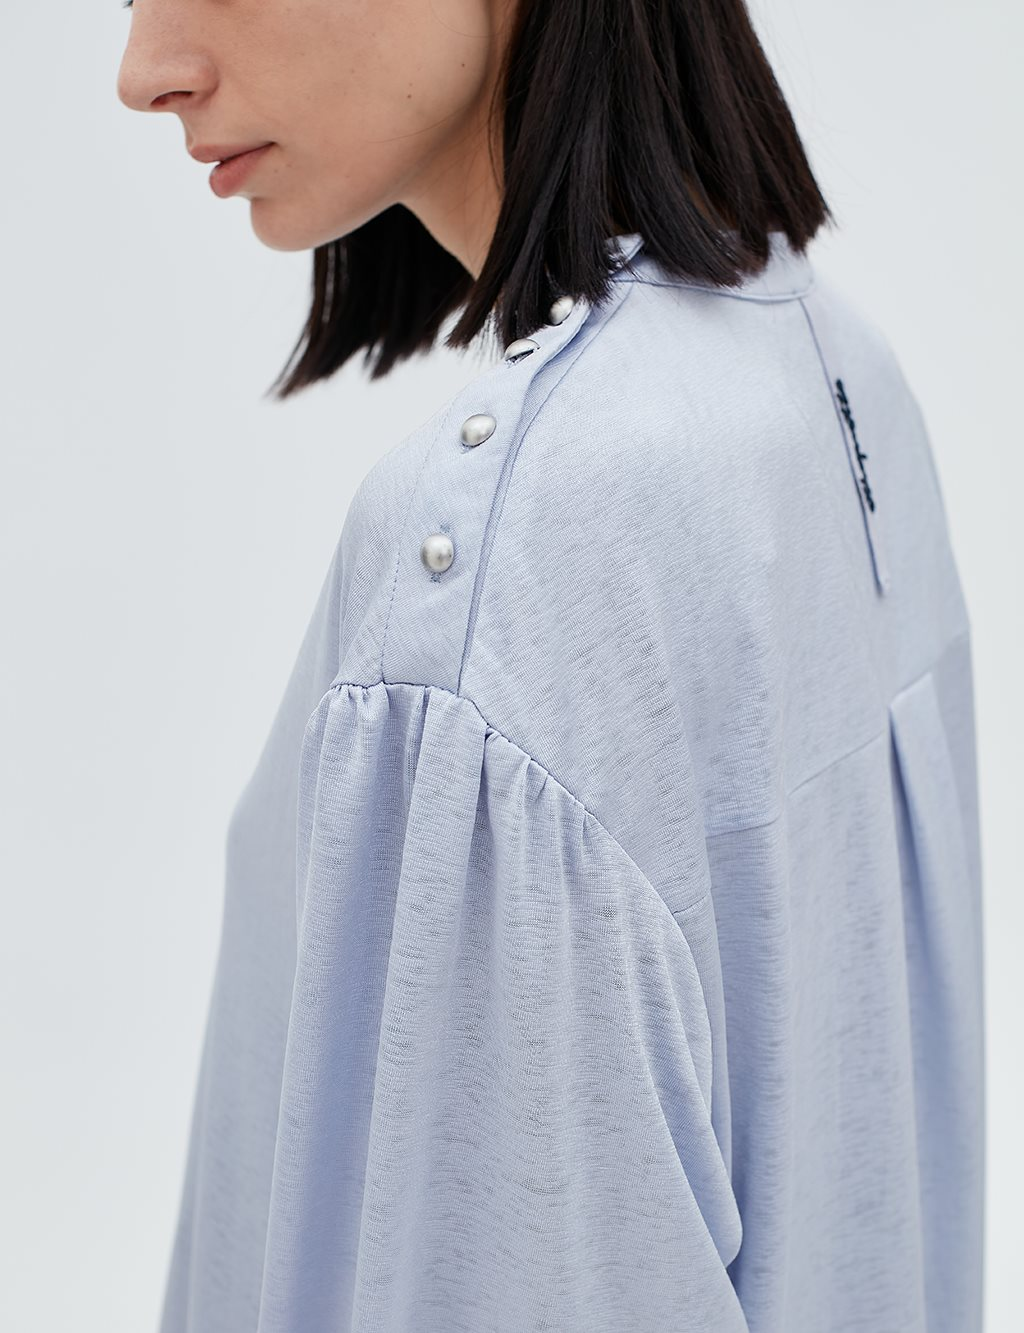 Button Detailed Blouse B20 10050 Blue